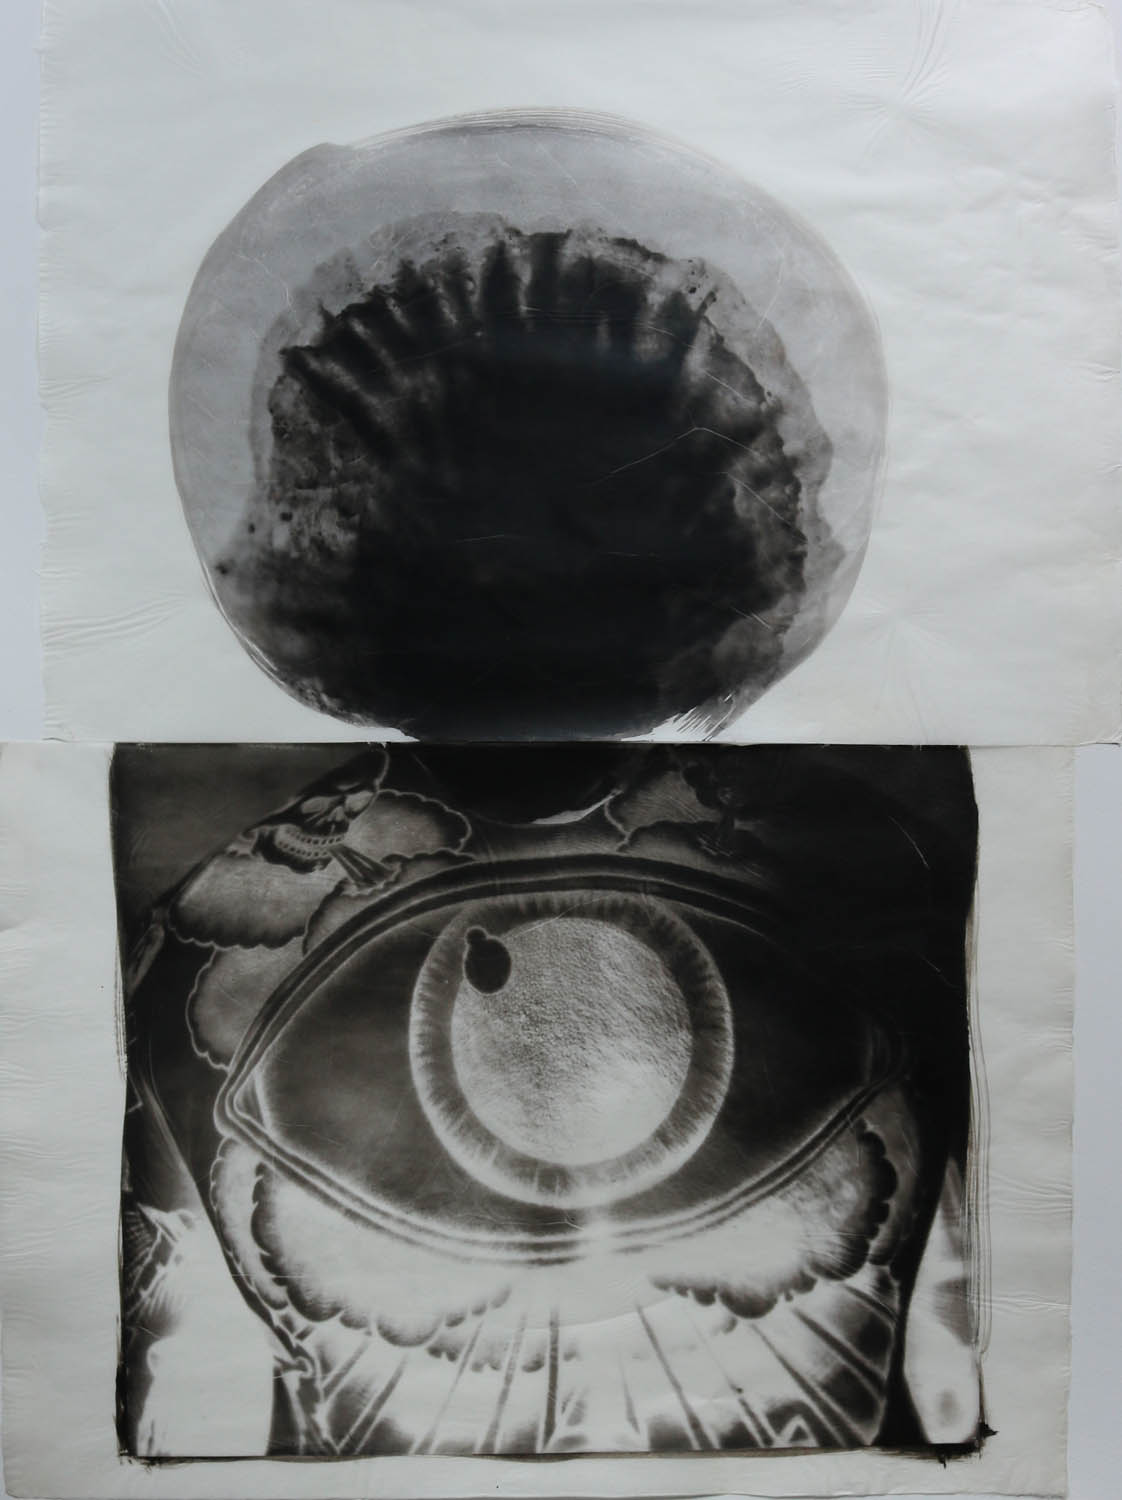 A diptych of a shell symbolizing a storm cloud placed on top of a man's tattooed back with storm winds and a large eye tattooed on him.